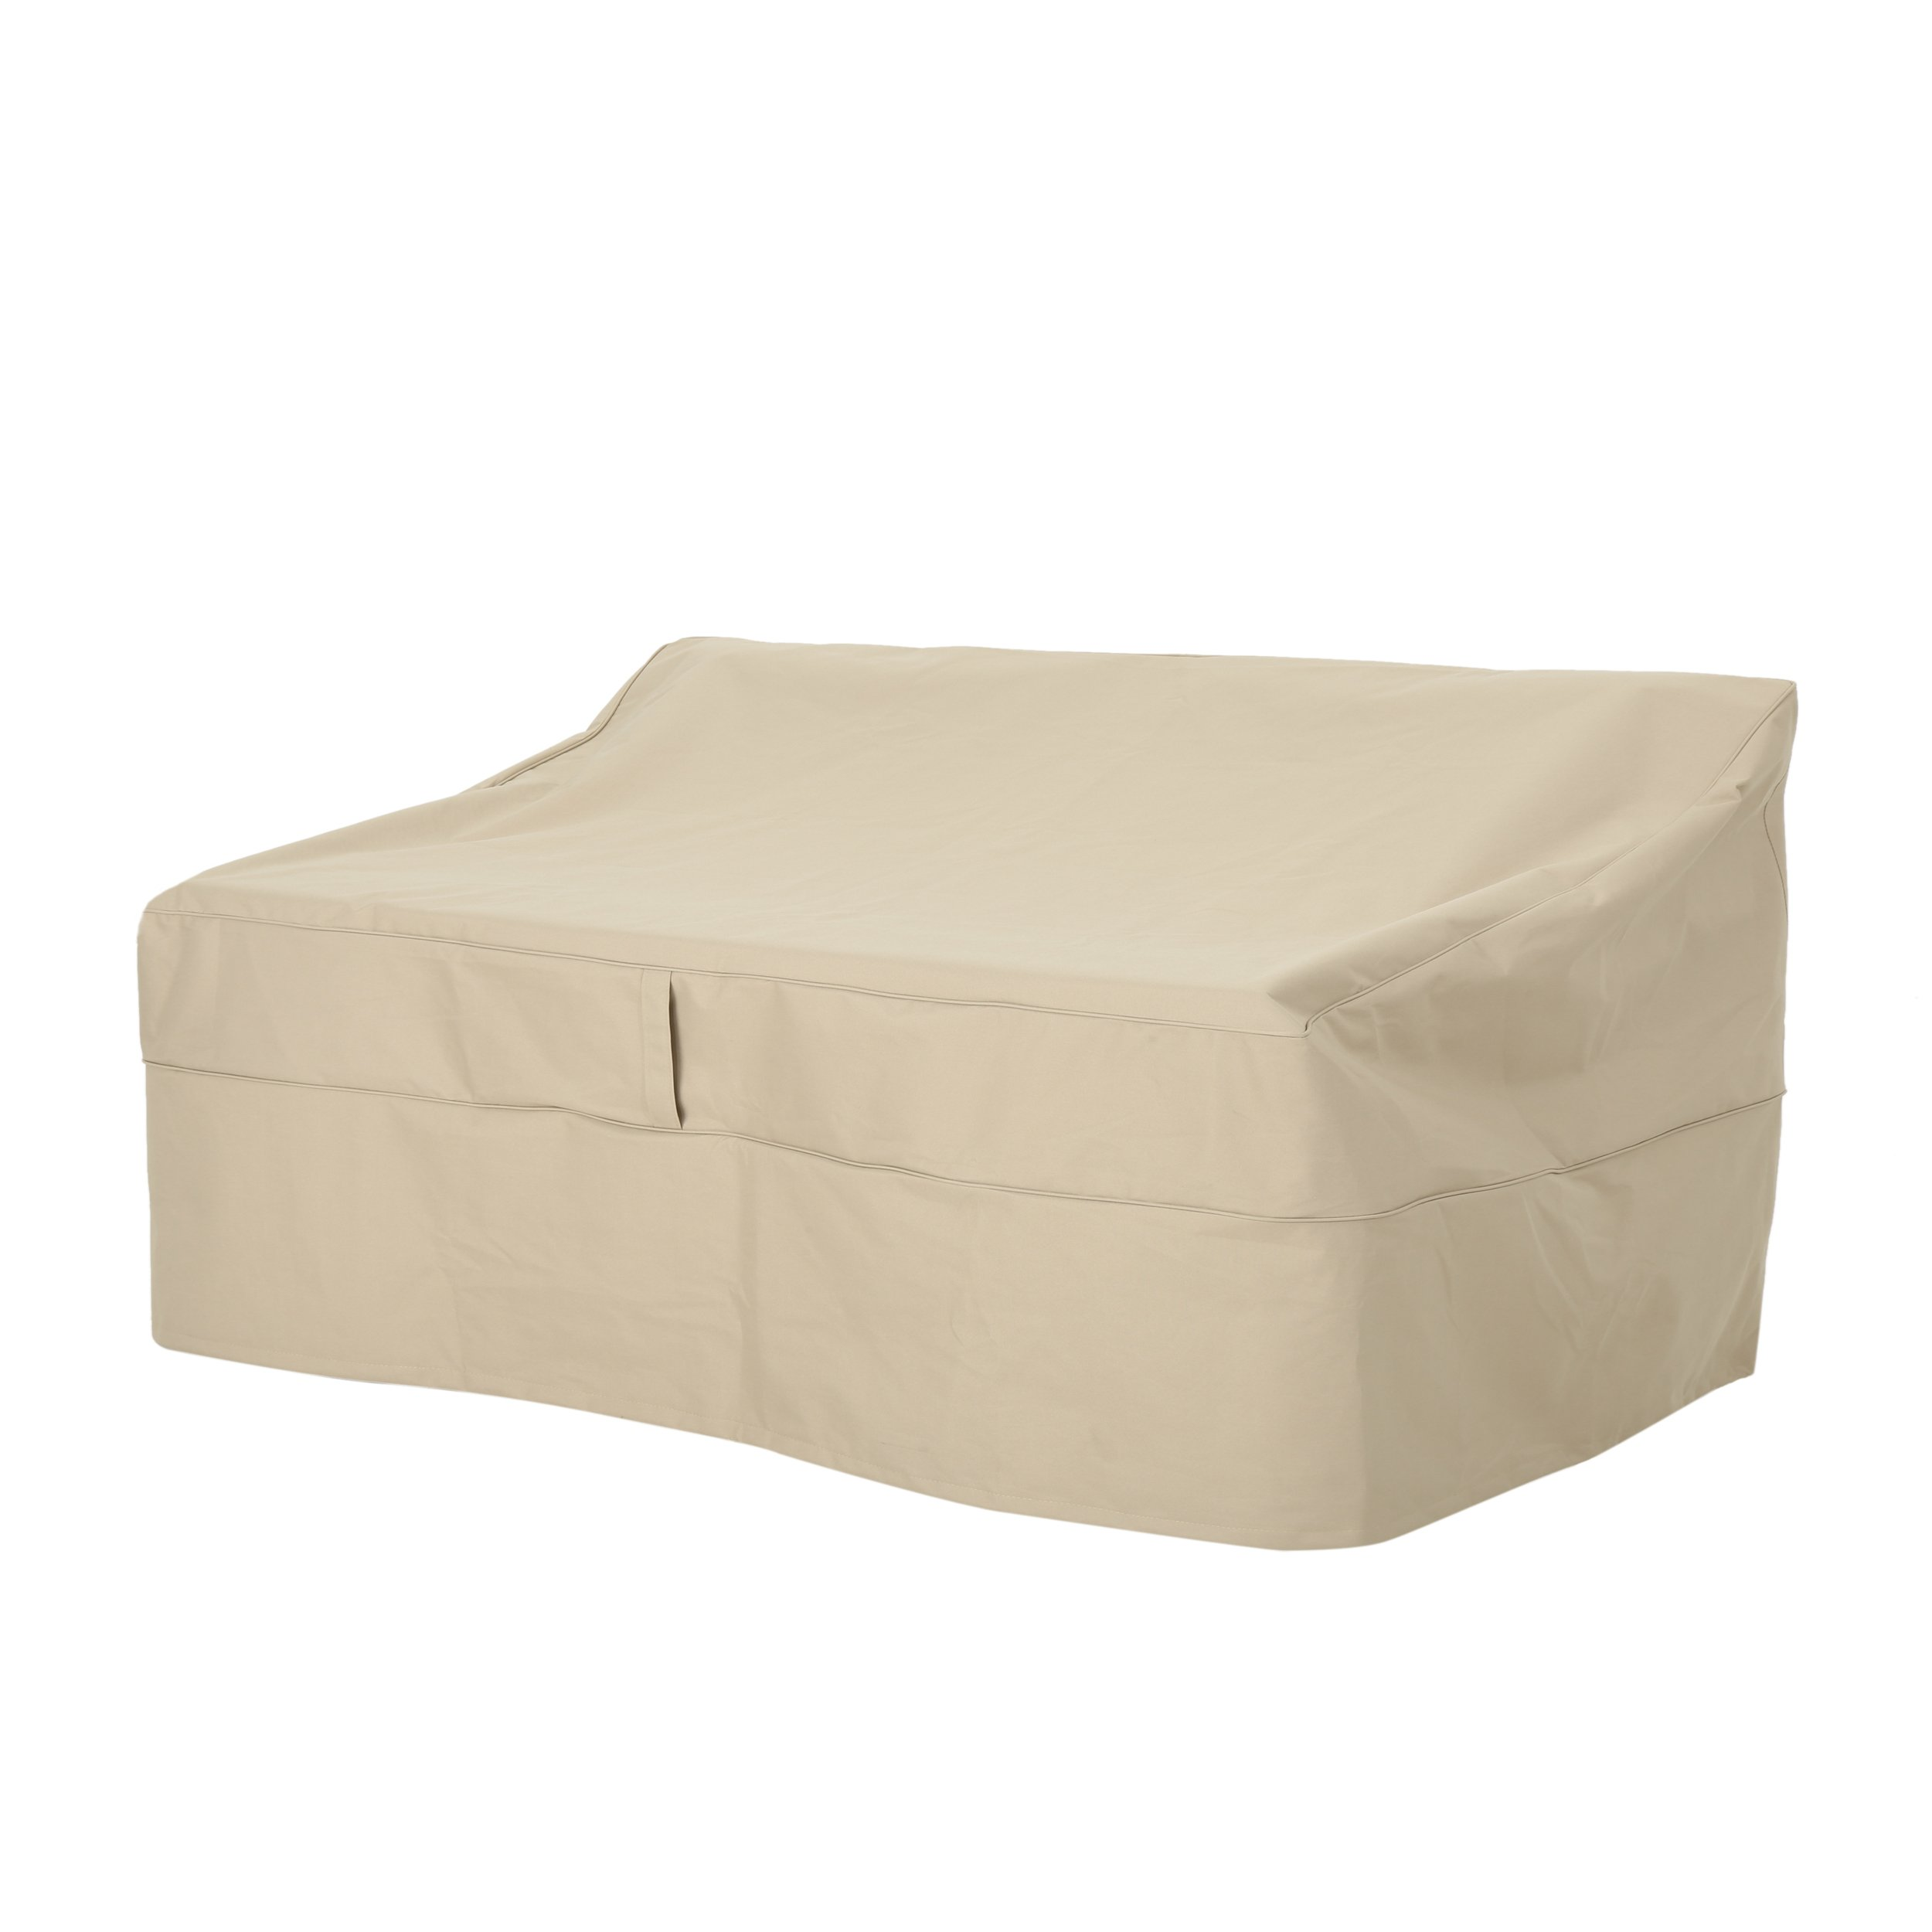 Charlene Outdoor 60'' by 35'' Waterproof Loveseat Cover, Beige by Great Deal Furniture (Image #1)